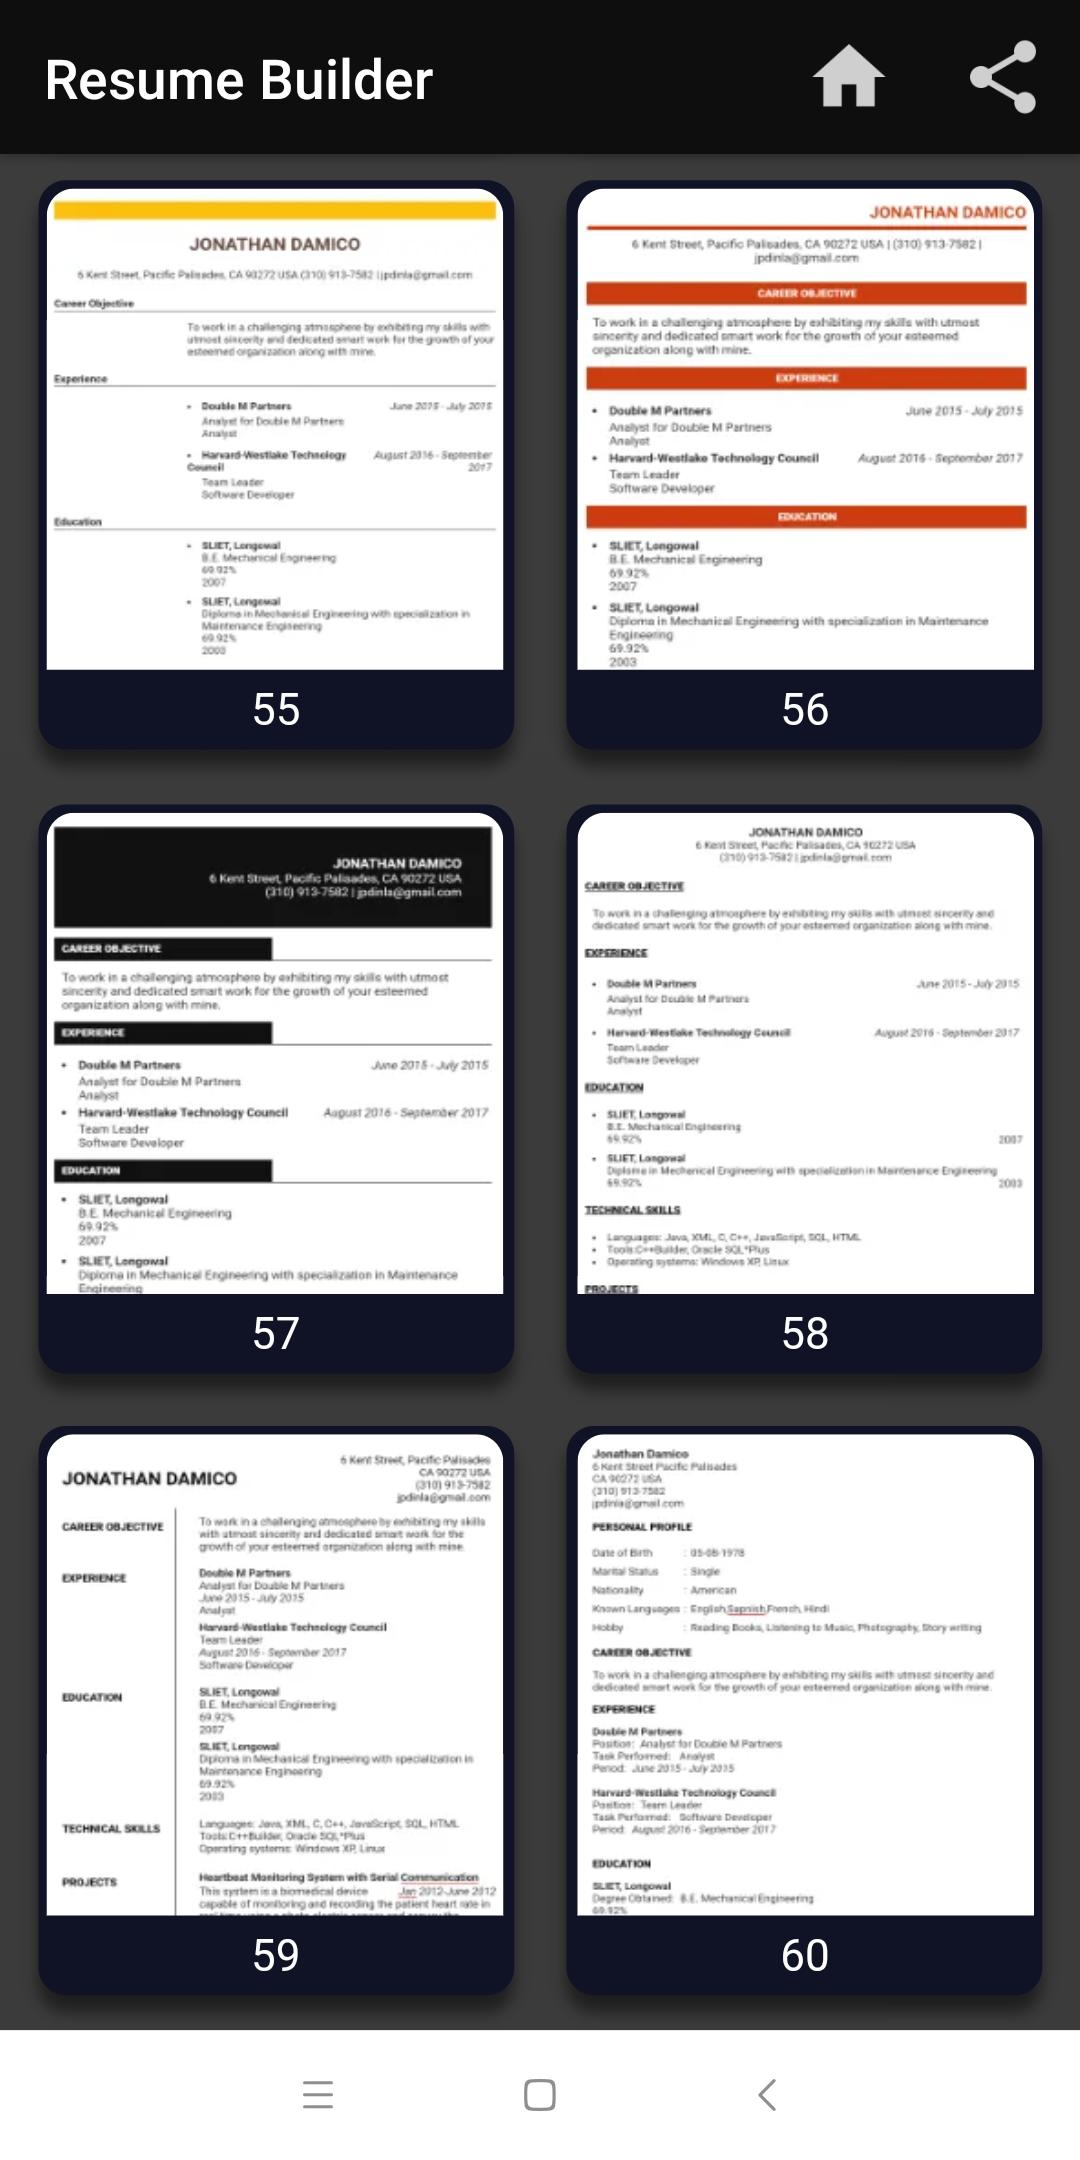 Resume Builder Free Cv Maker Templates Formats App For Android